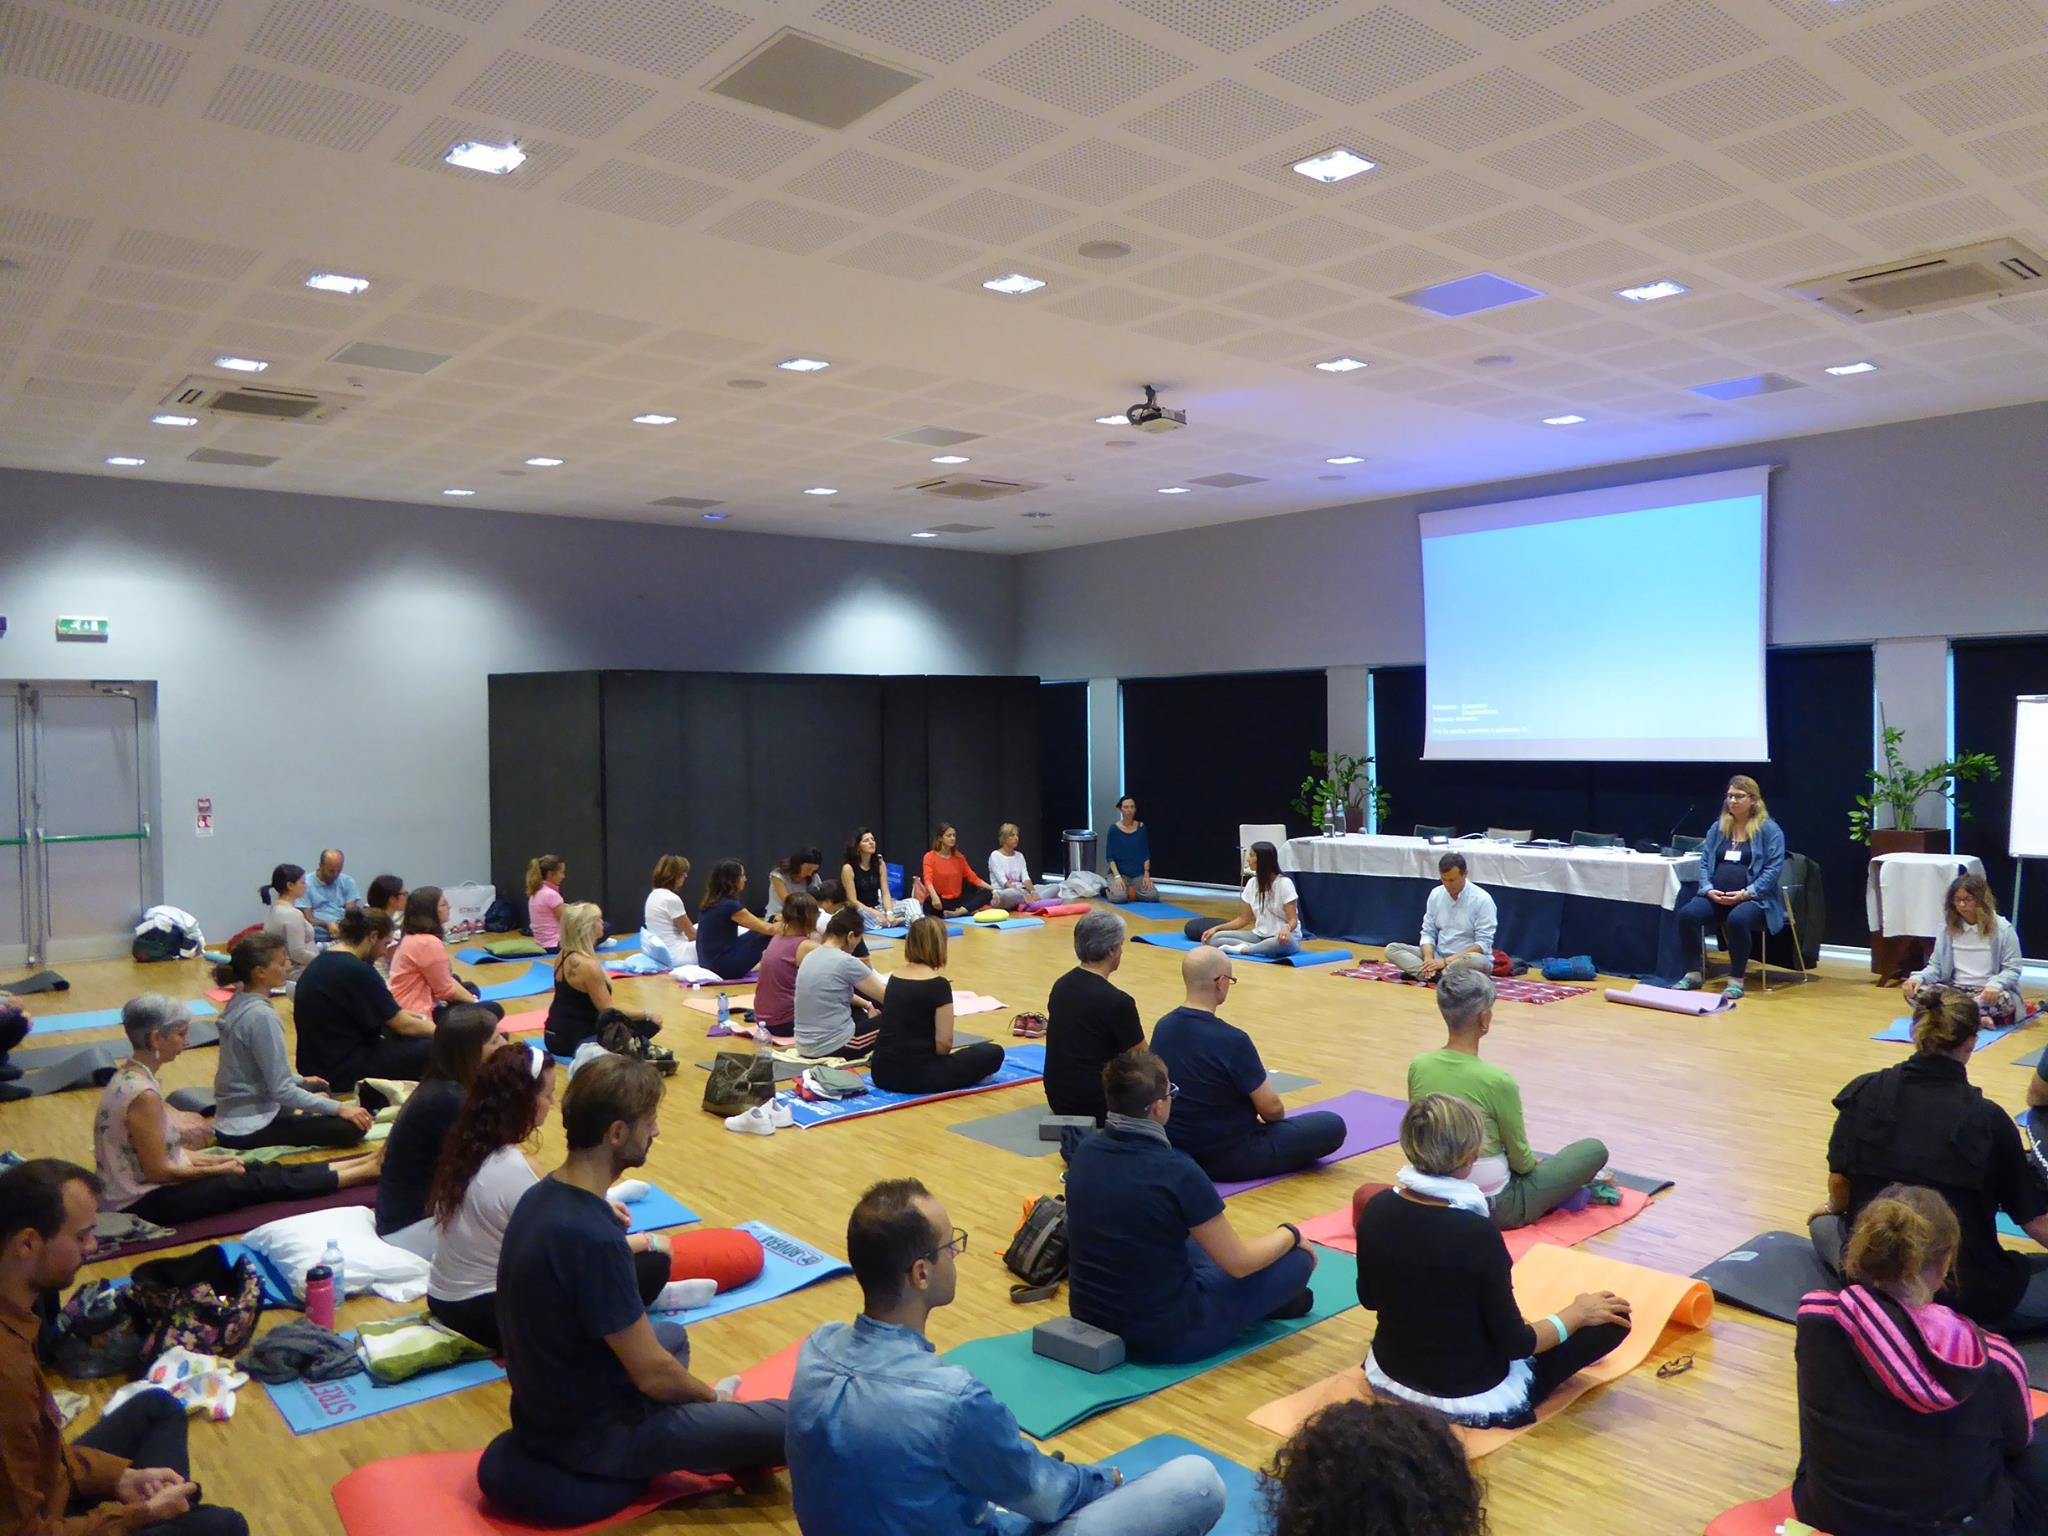 Programma di riduzione dello stress – mindfulness based stress reduction